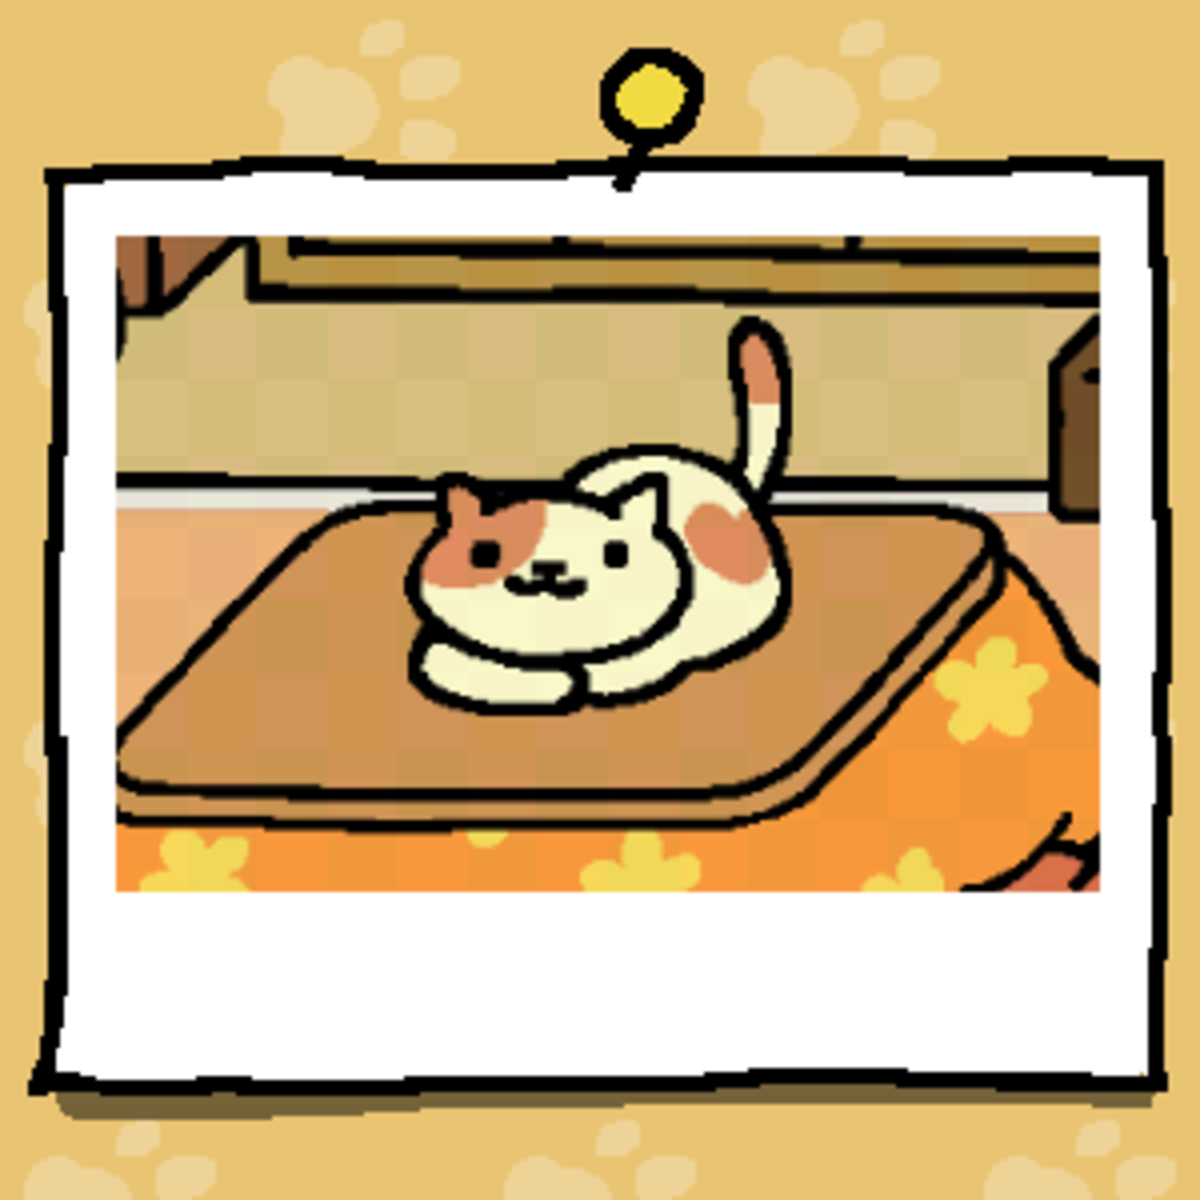 This is the snap of Peaches that I got when they used the Kotatsu.